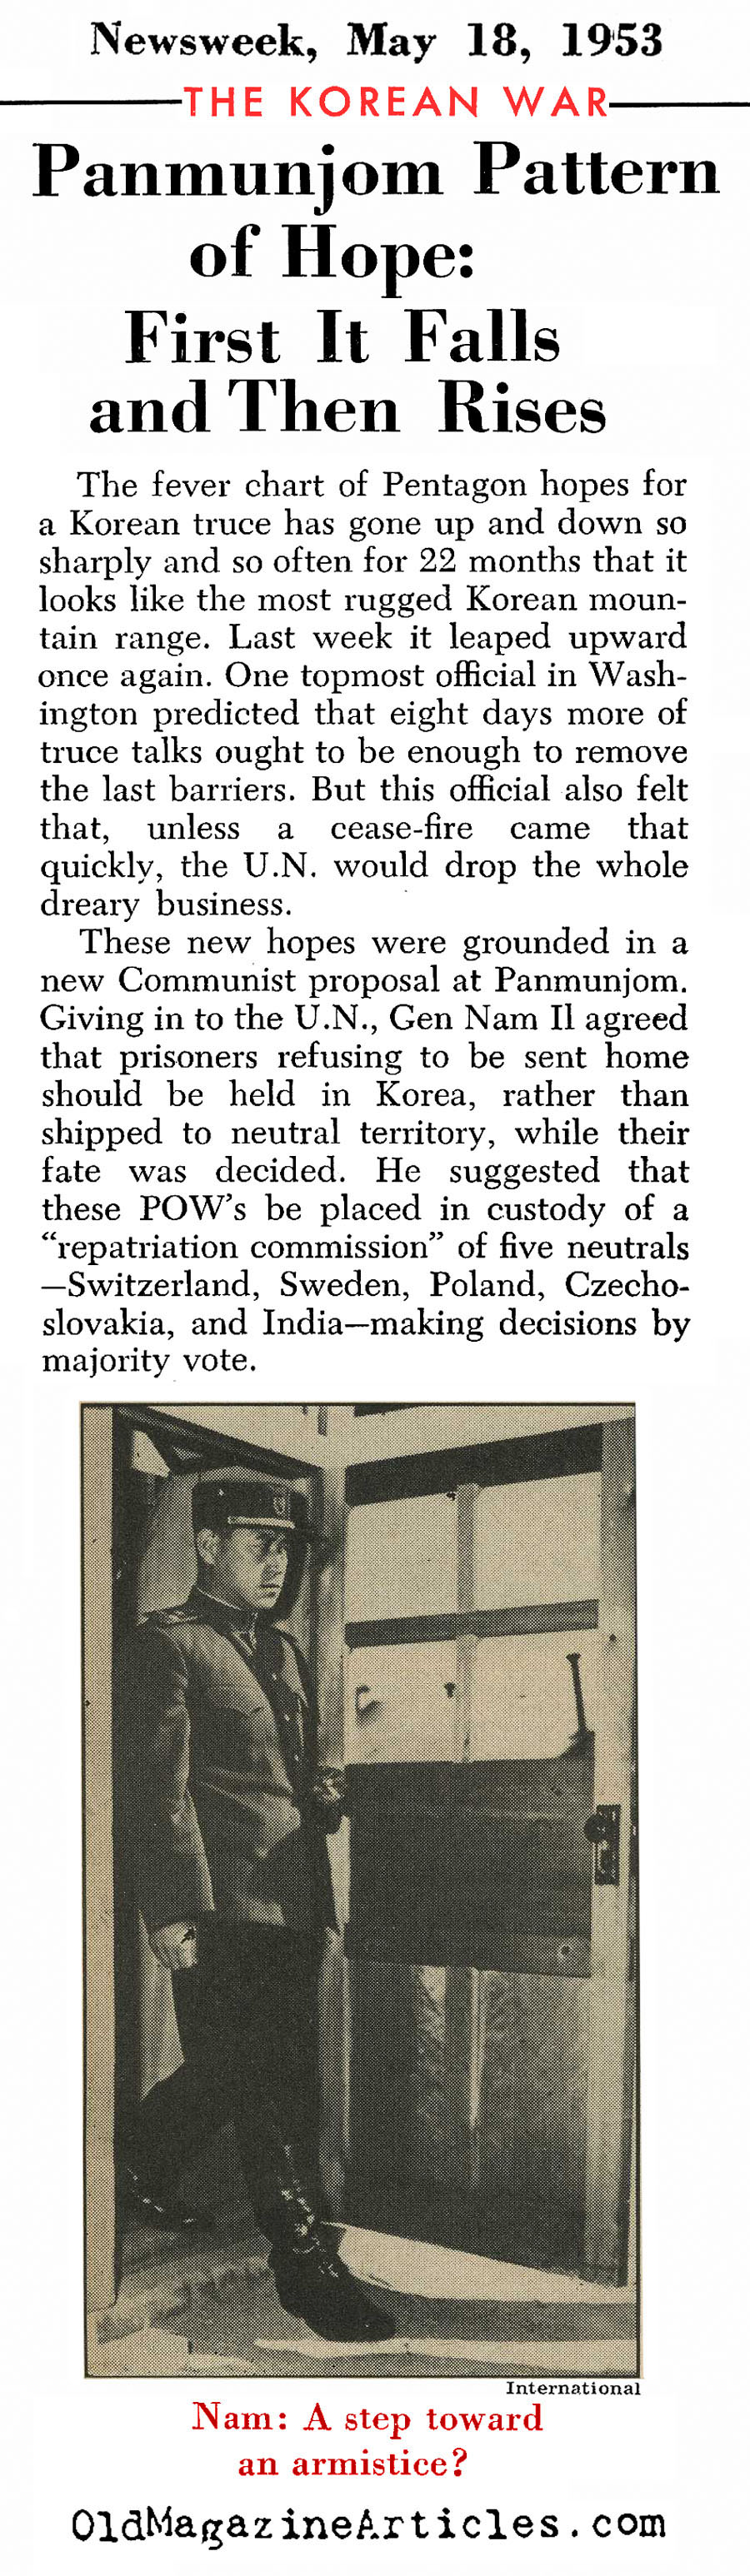 Peace At Last (Newsweek, Quick Magazine, 1953)